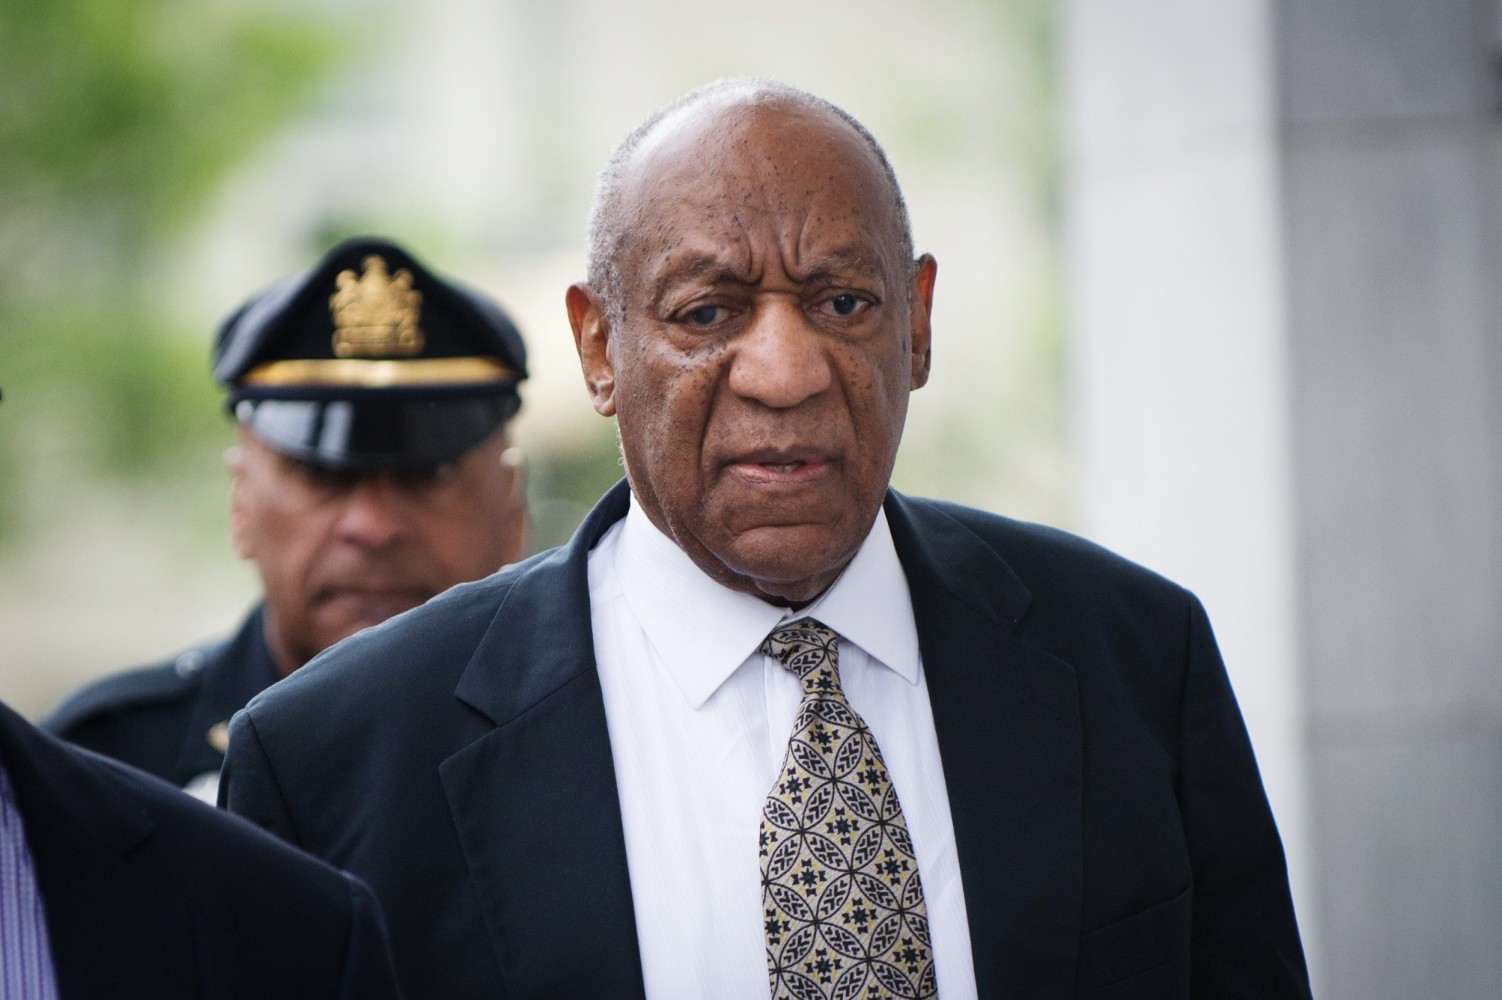 Michael Jackson's Secret Weapon Is Coming to Bill Cosby's Rescue